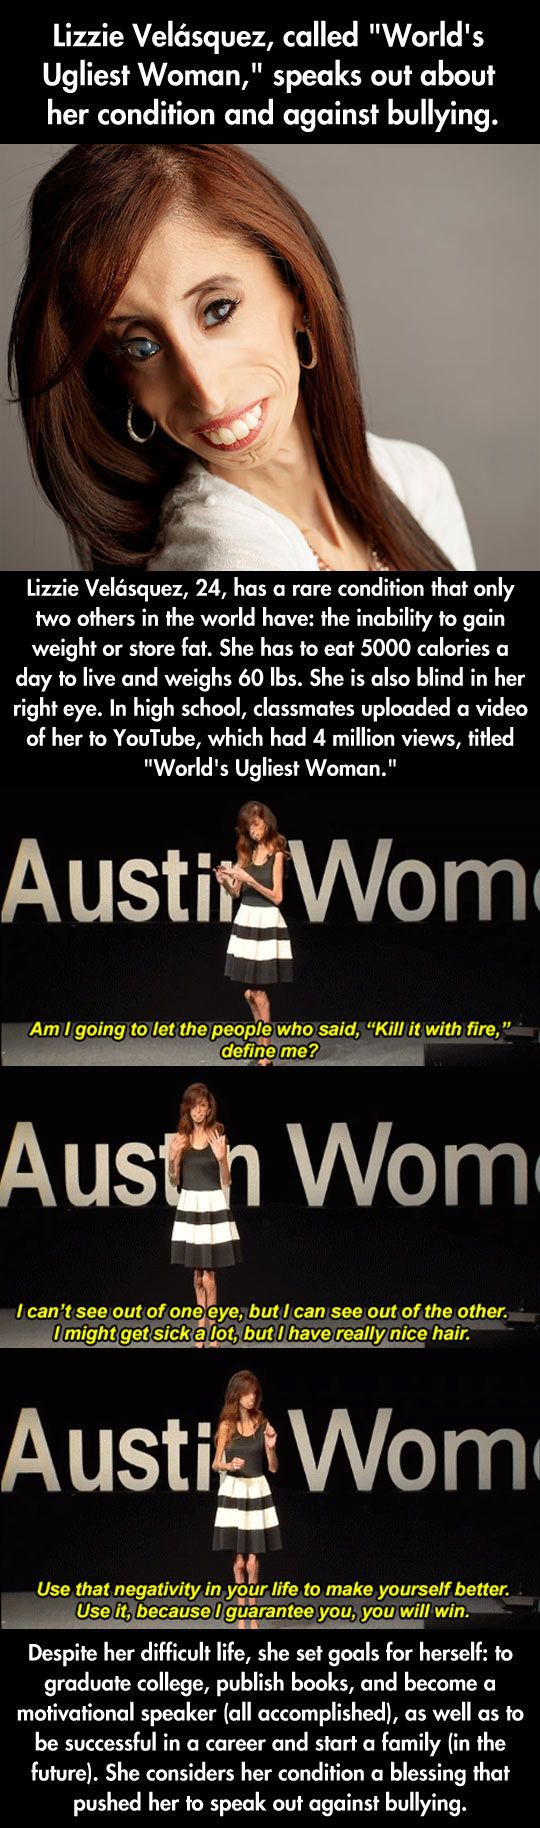 Lizzie Velasquez, A Role Model - The Meta Picture